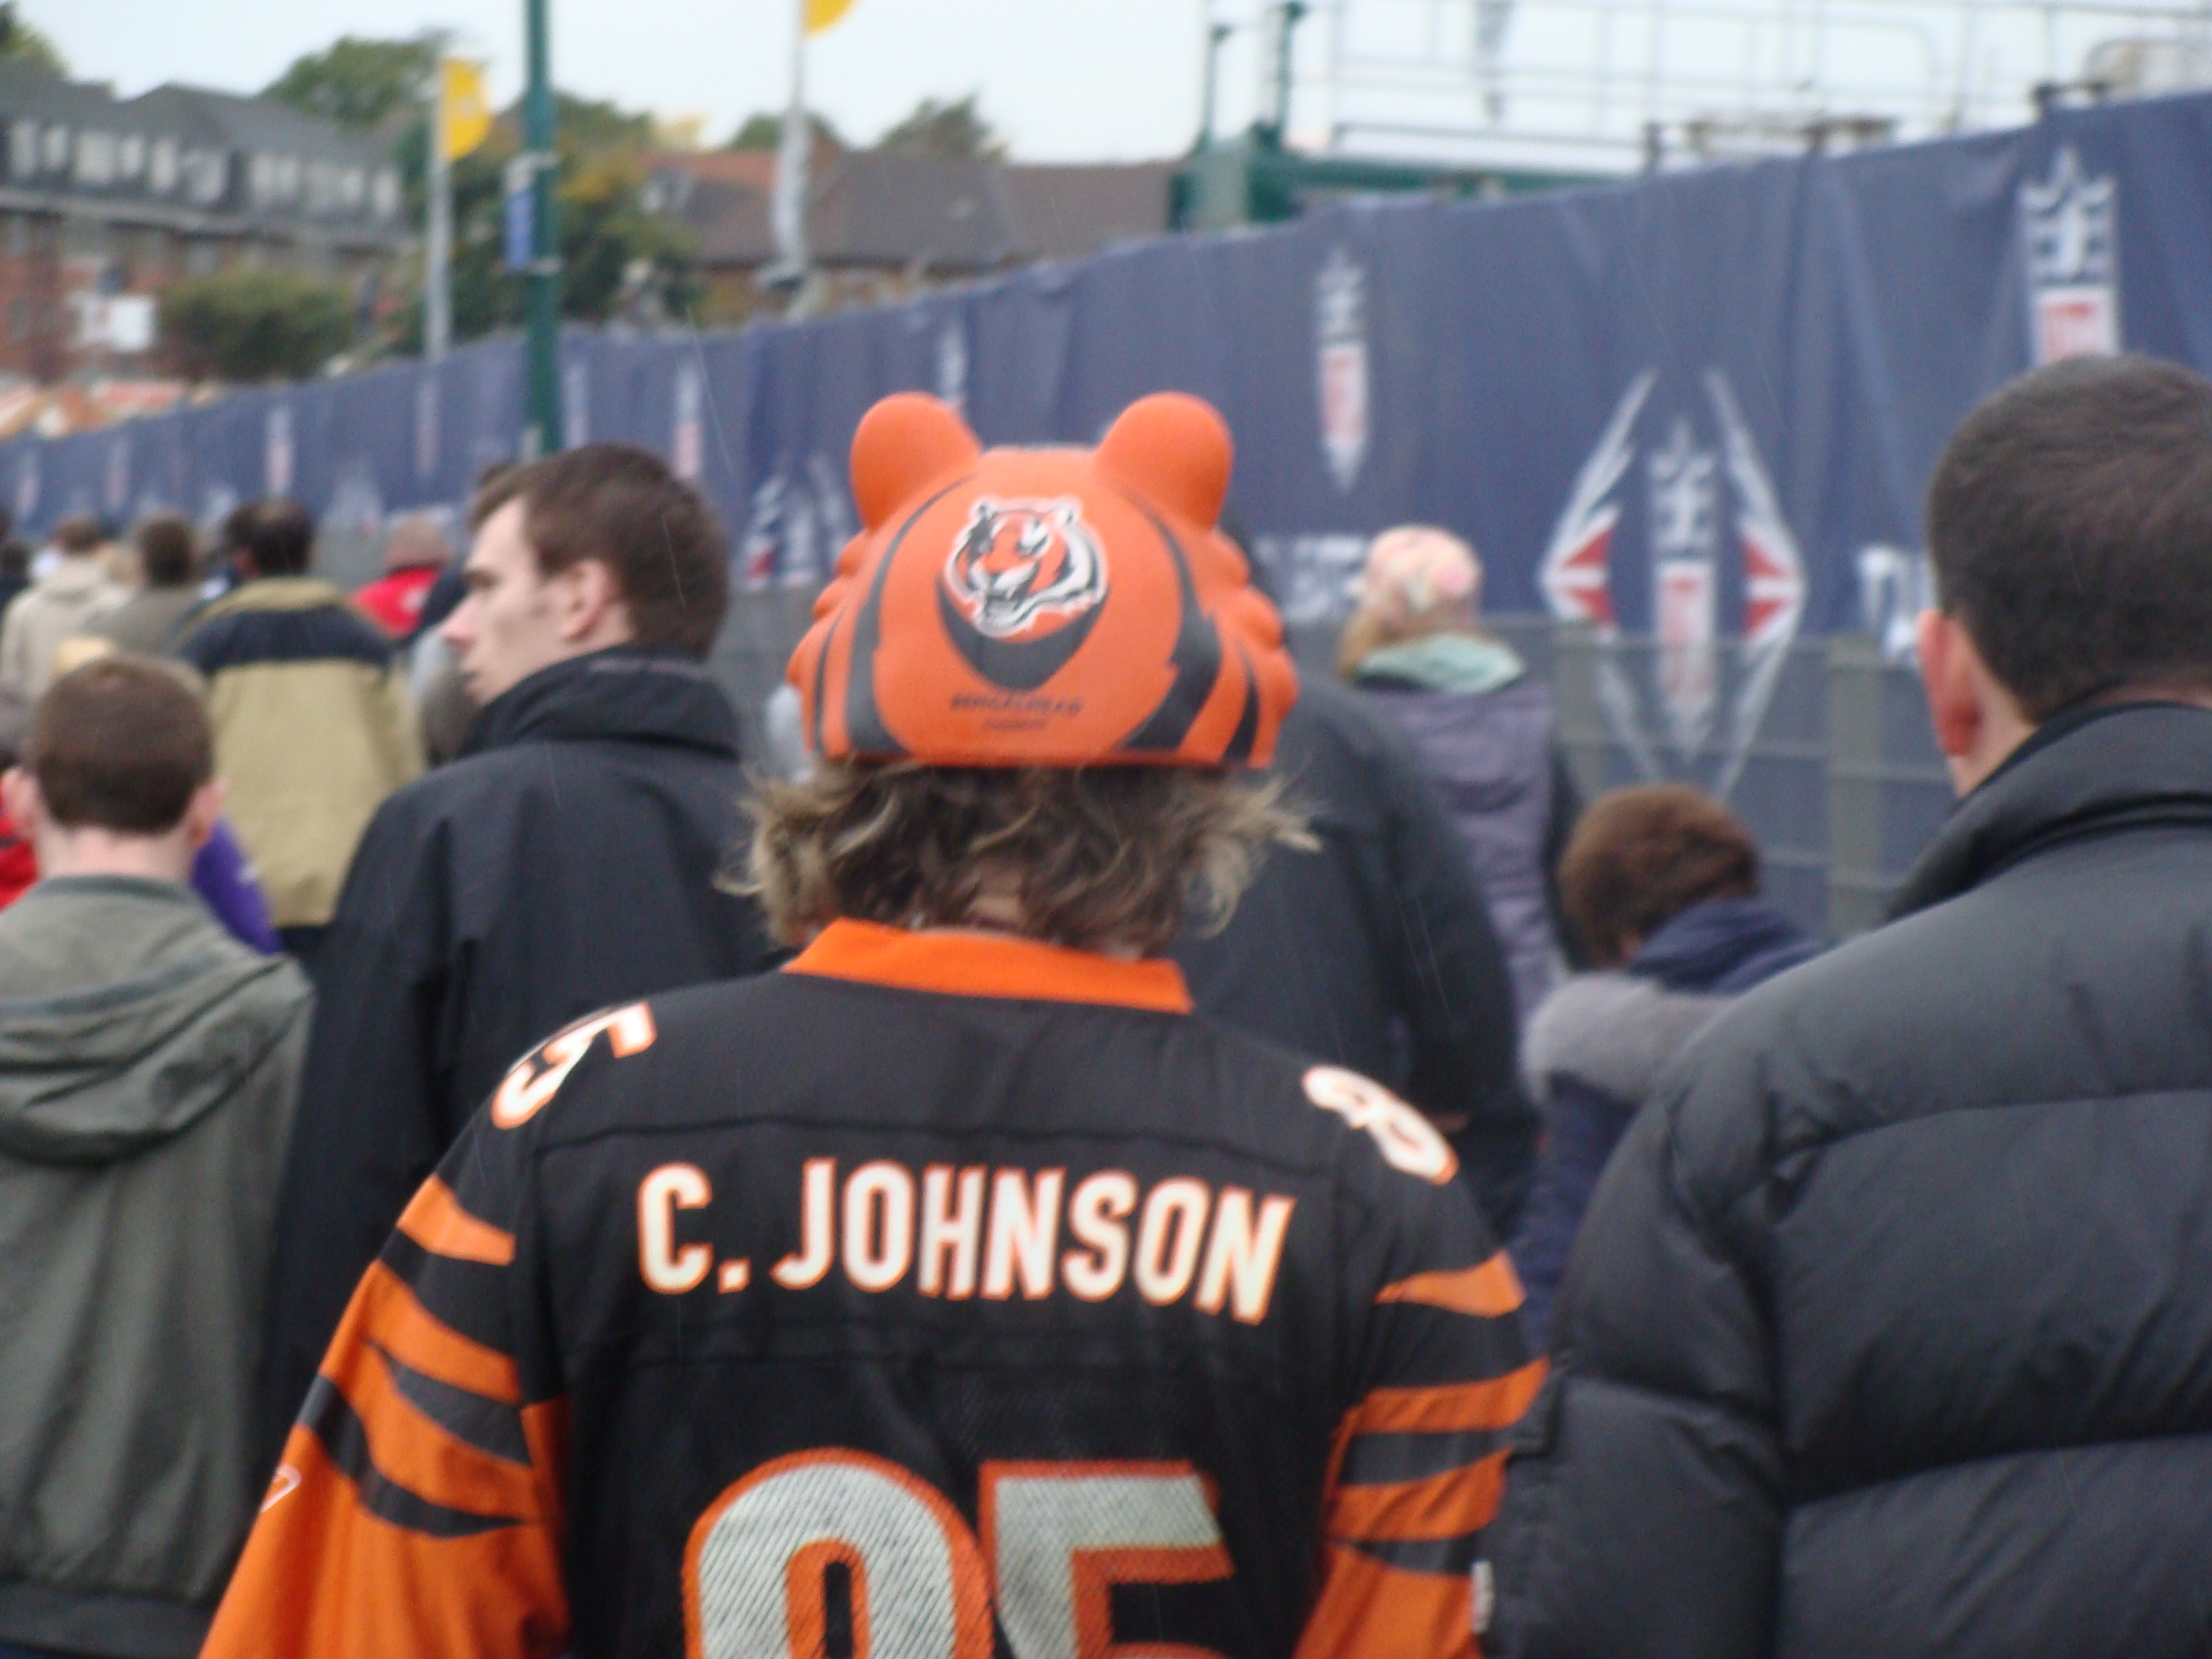 Yes there are Bengals fans in England - even ones with daft orange ears. My wife had me chase this person up the road to get a picture ! She is a Bengals fan